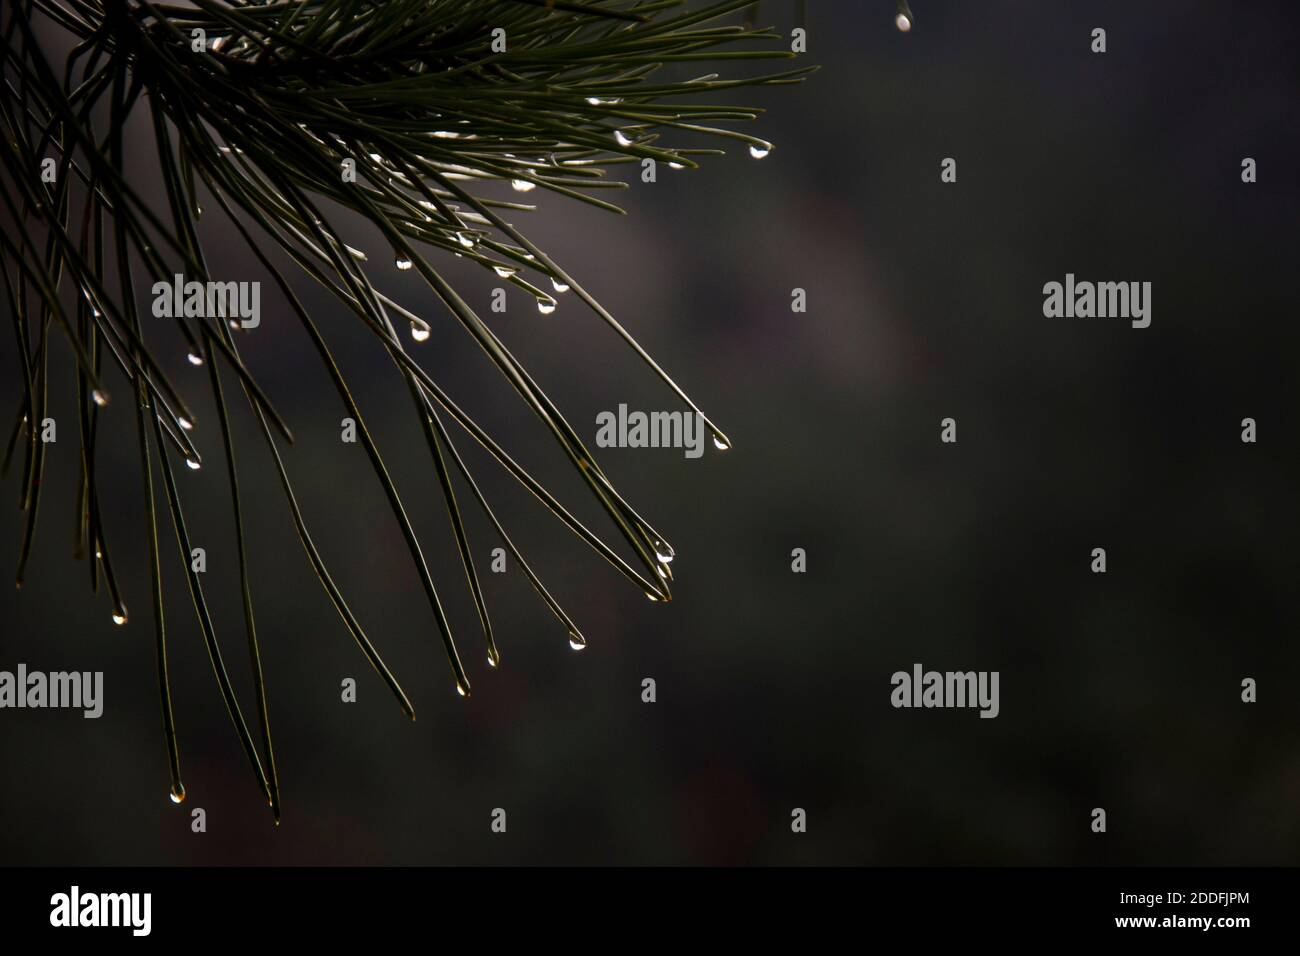 Evergreen tree close up on needle leaves details with water drops Stock Photo